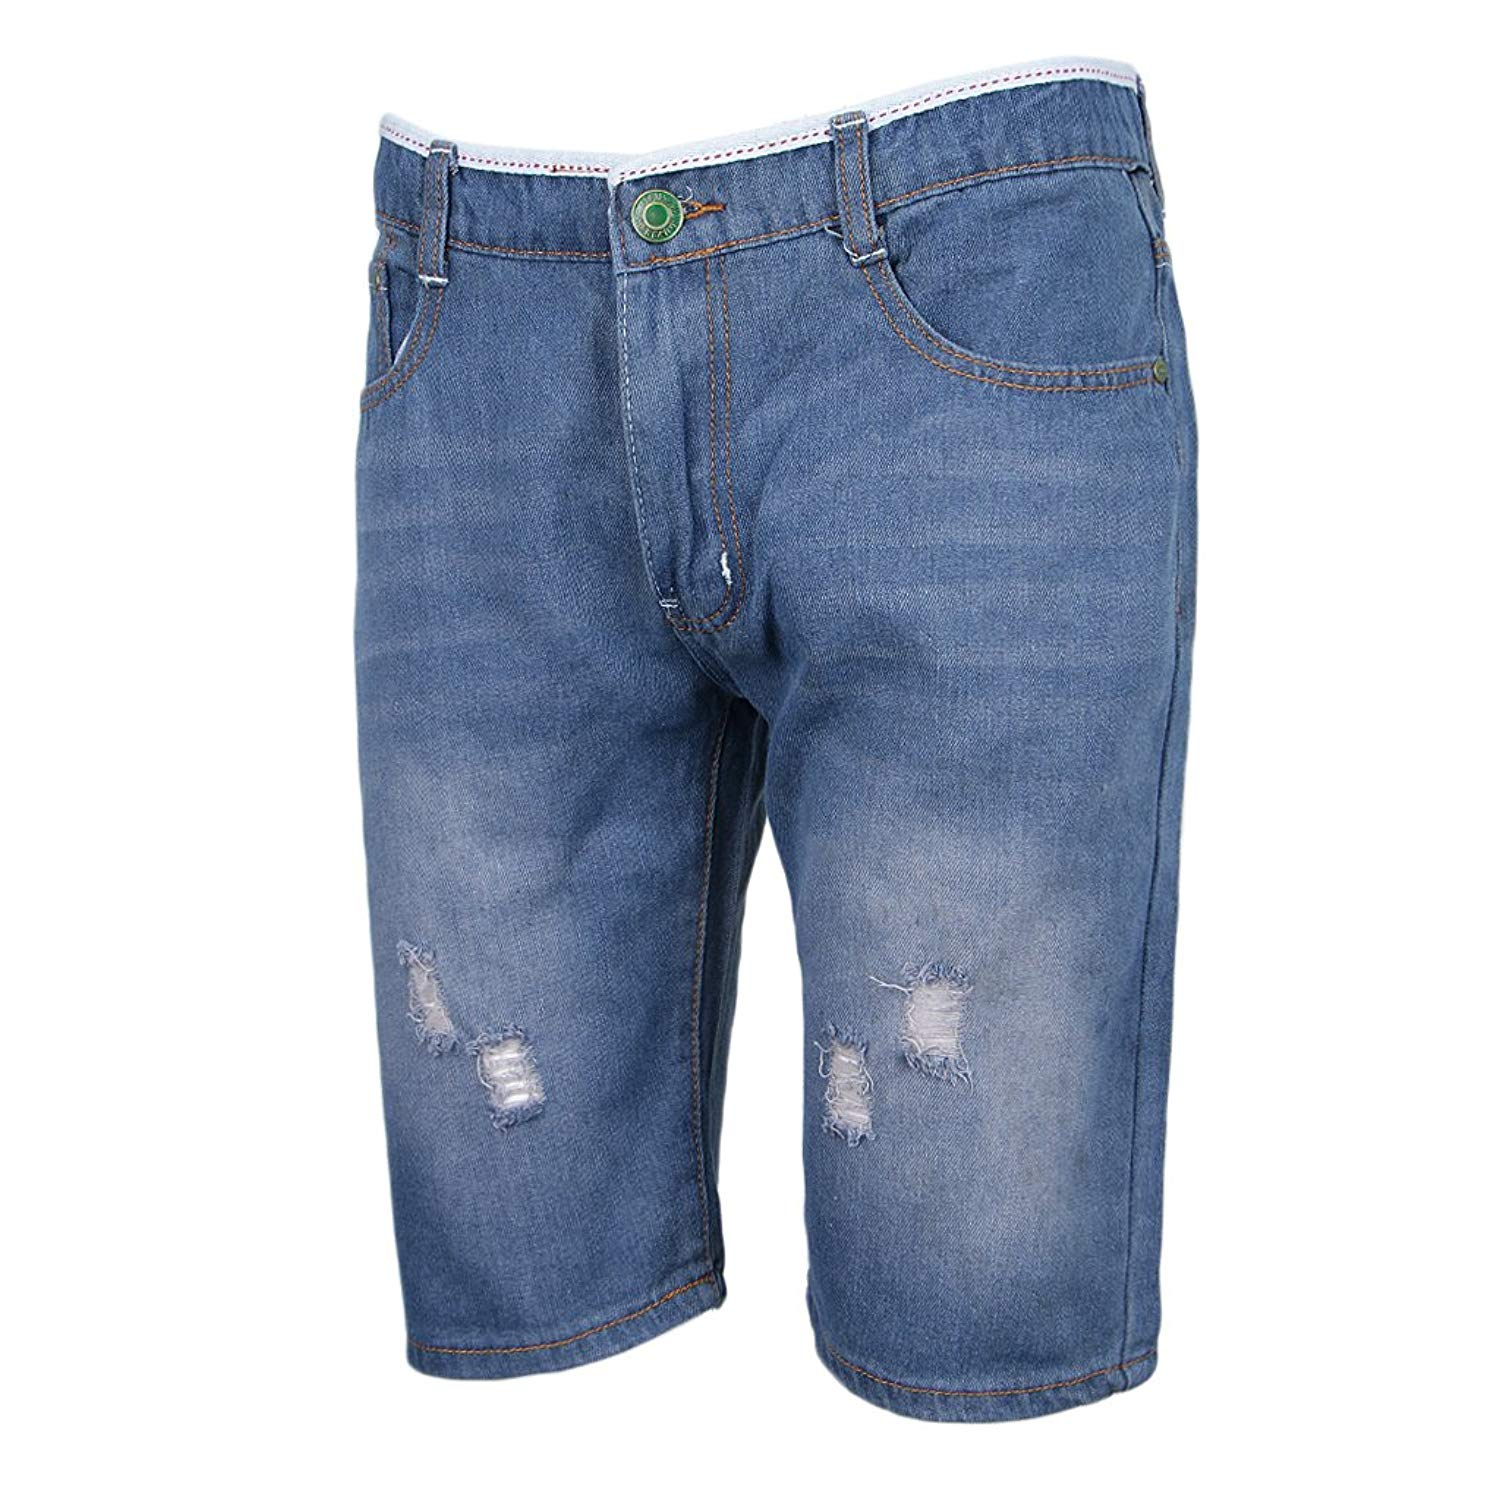 16fc4489 Get Quotations · Homyl Men's Casual Denim Shorts Ripped Short Jeans  Straight Legs